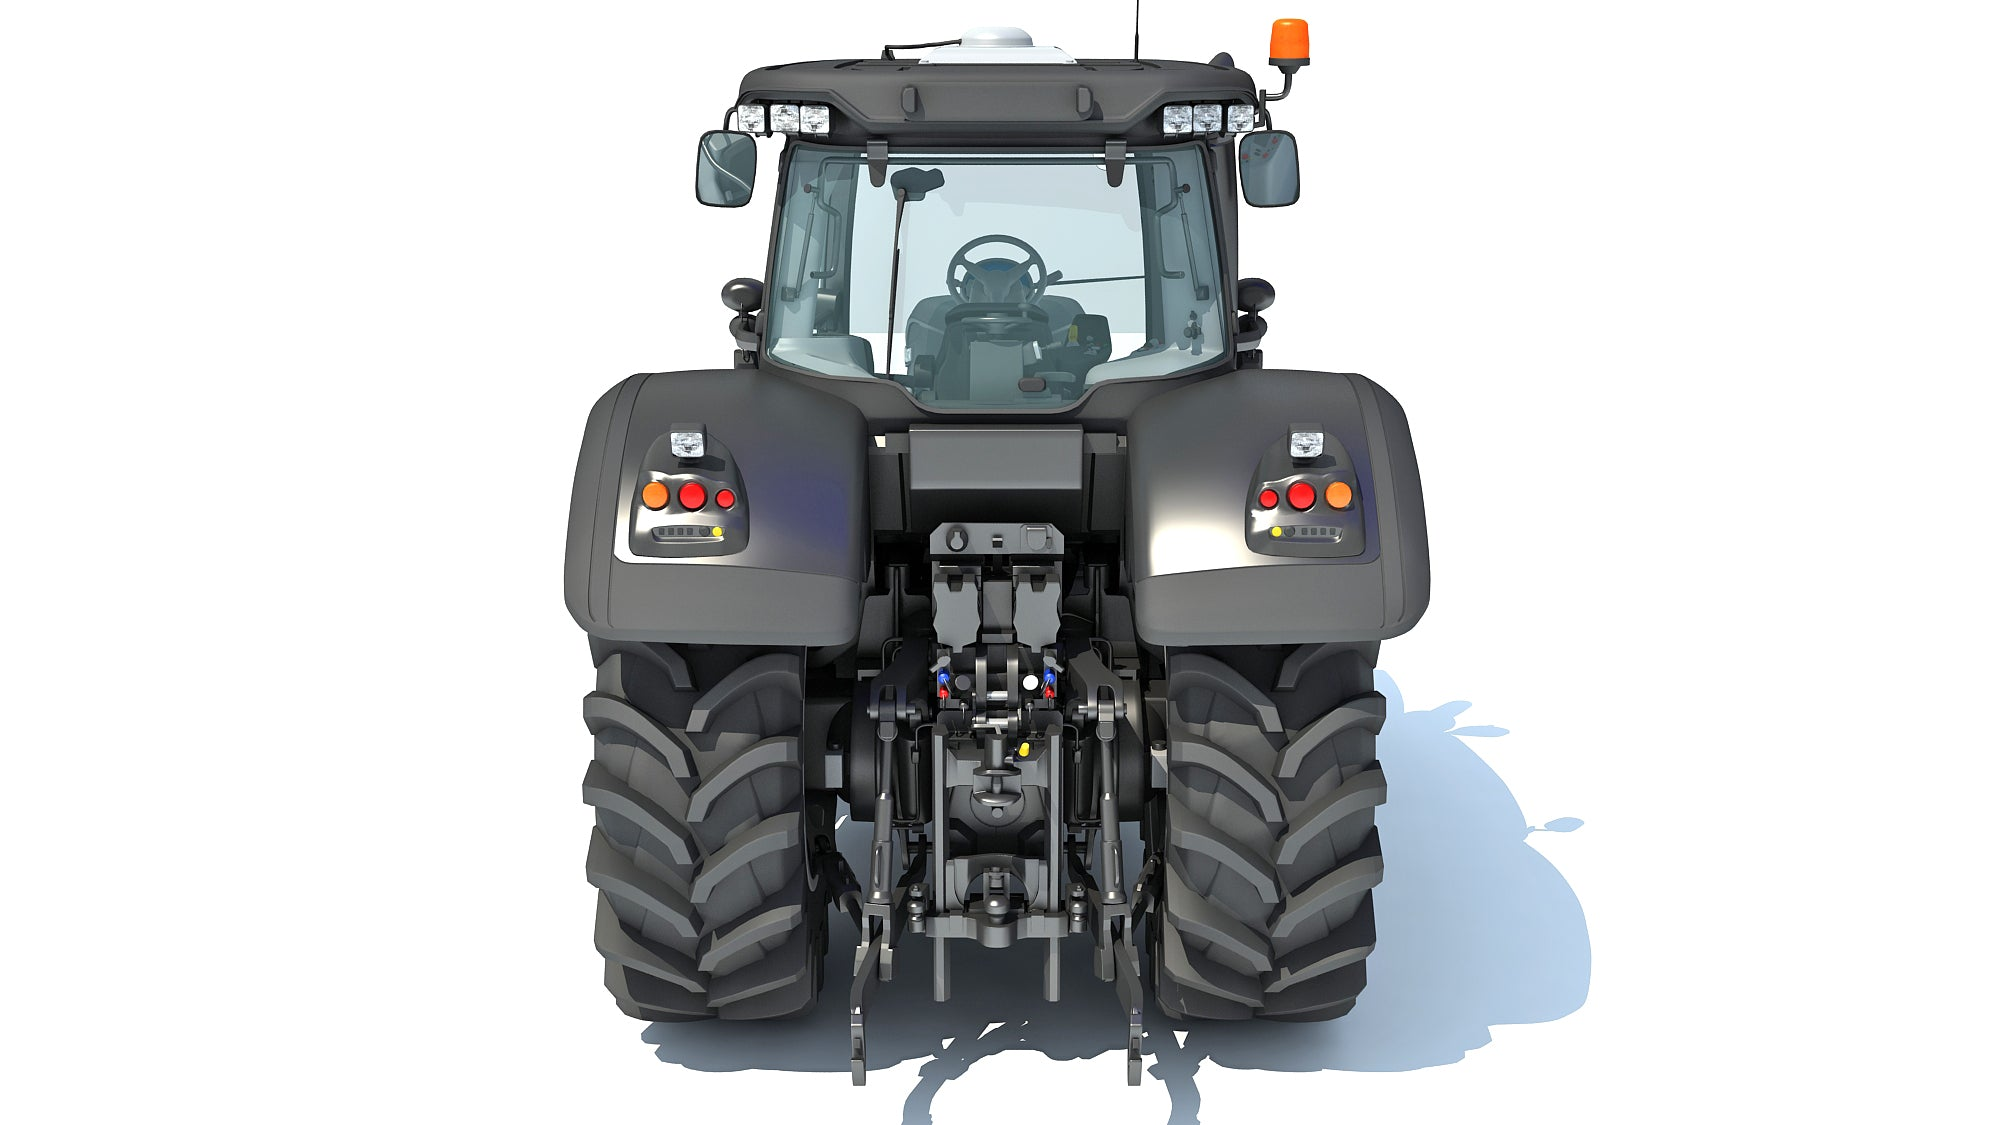 Valtra Tractor S4 Series